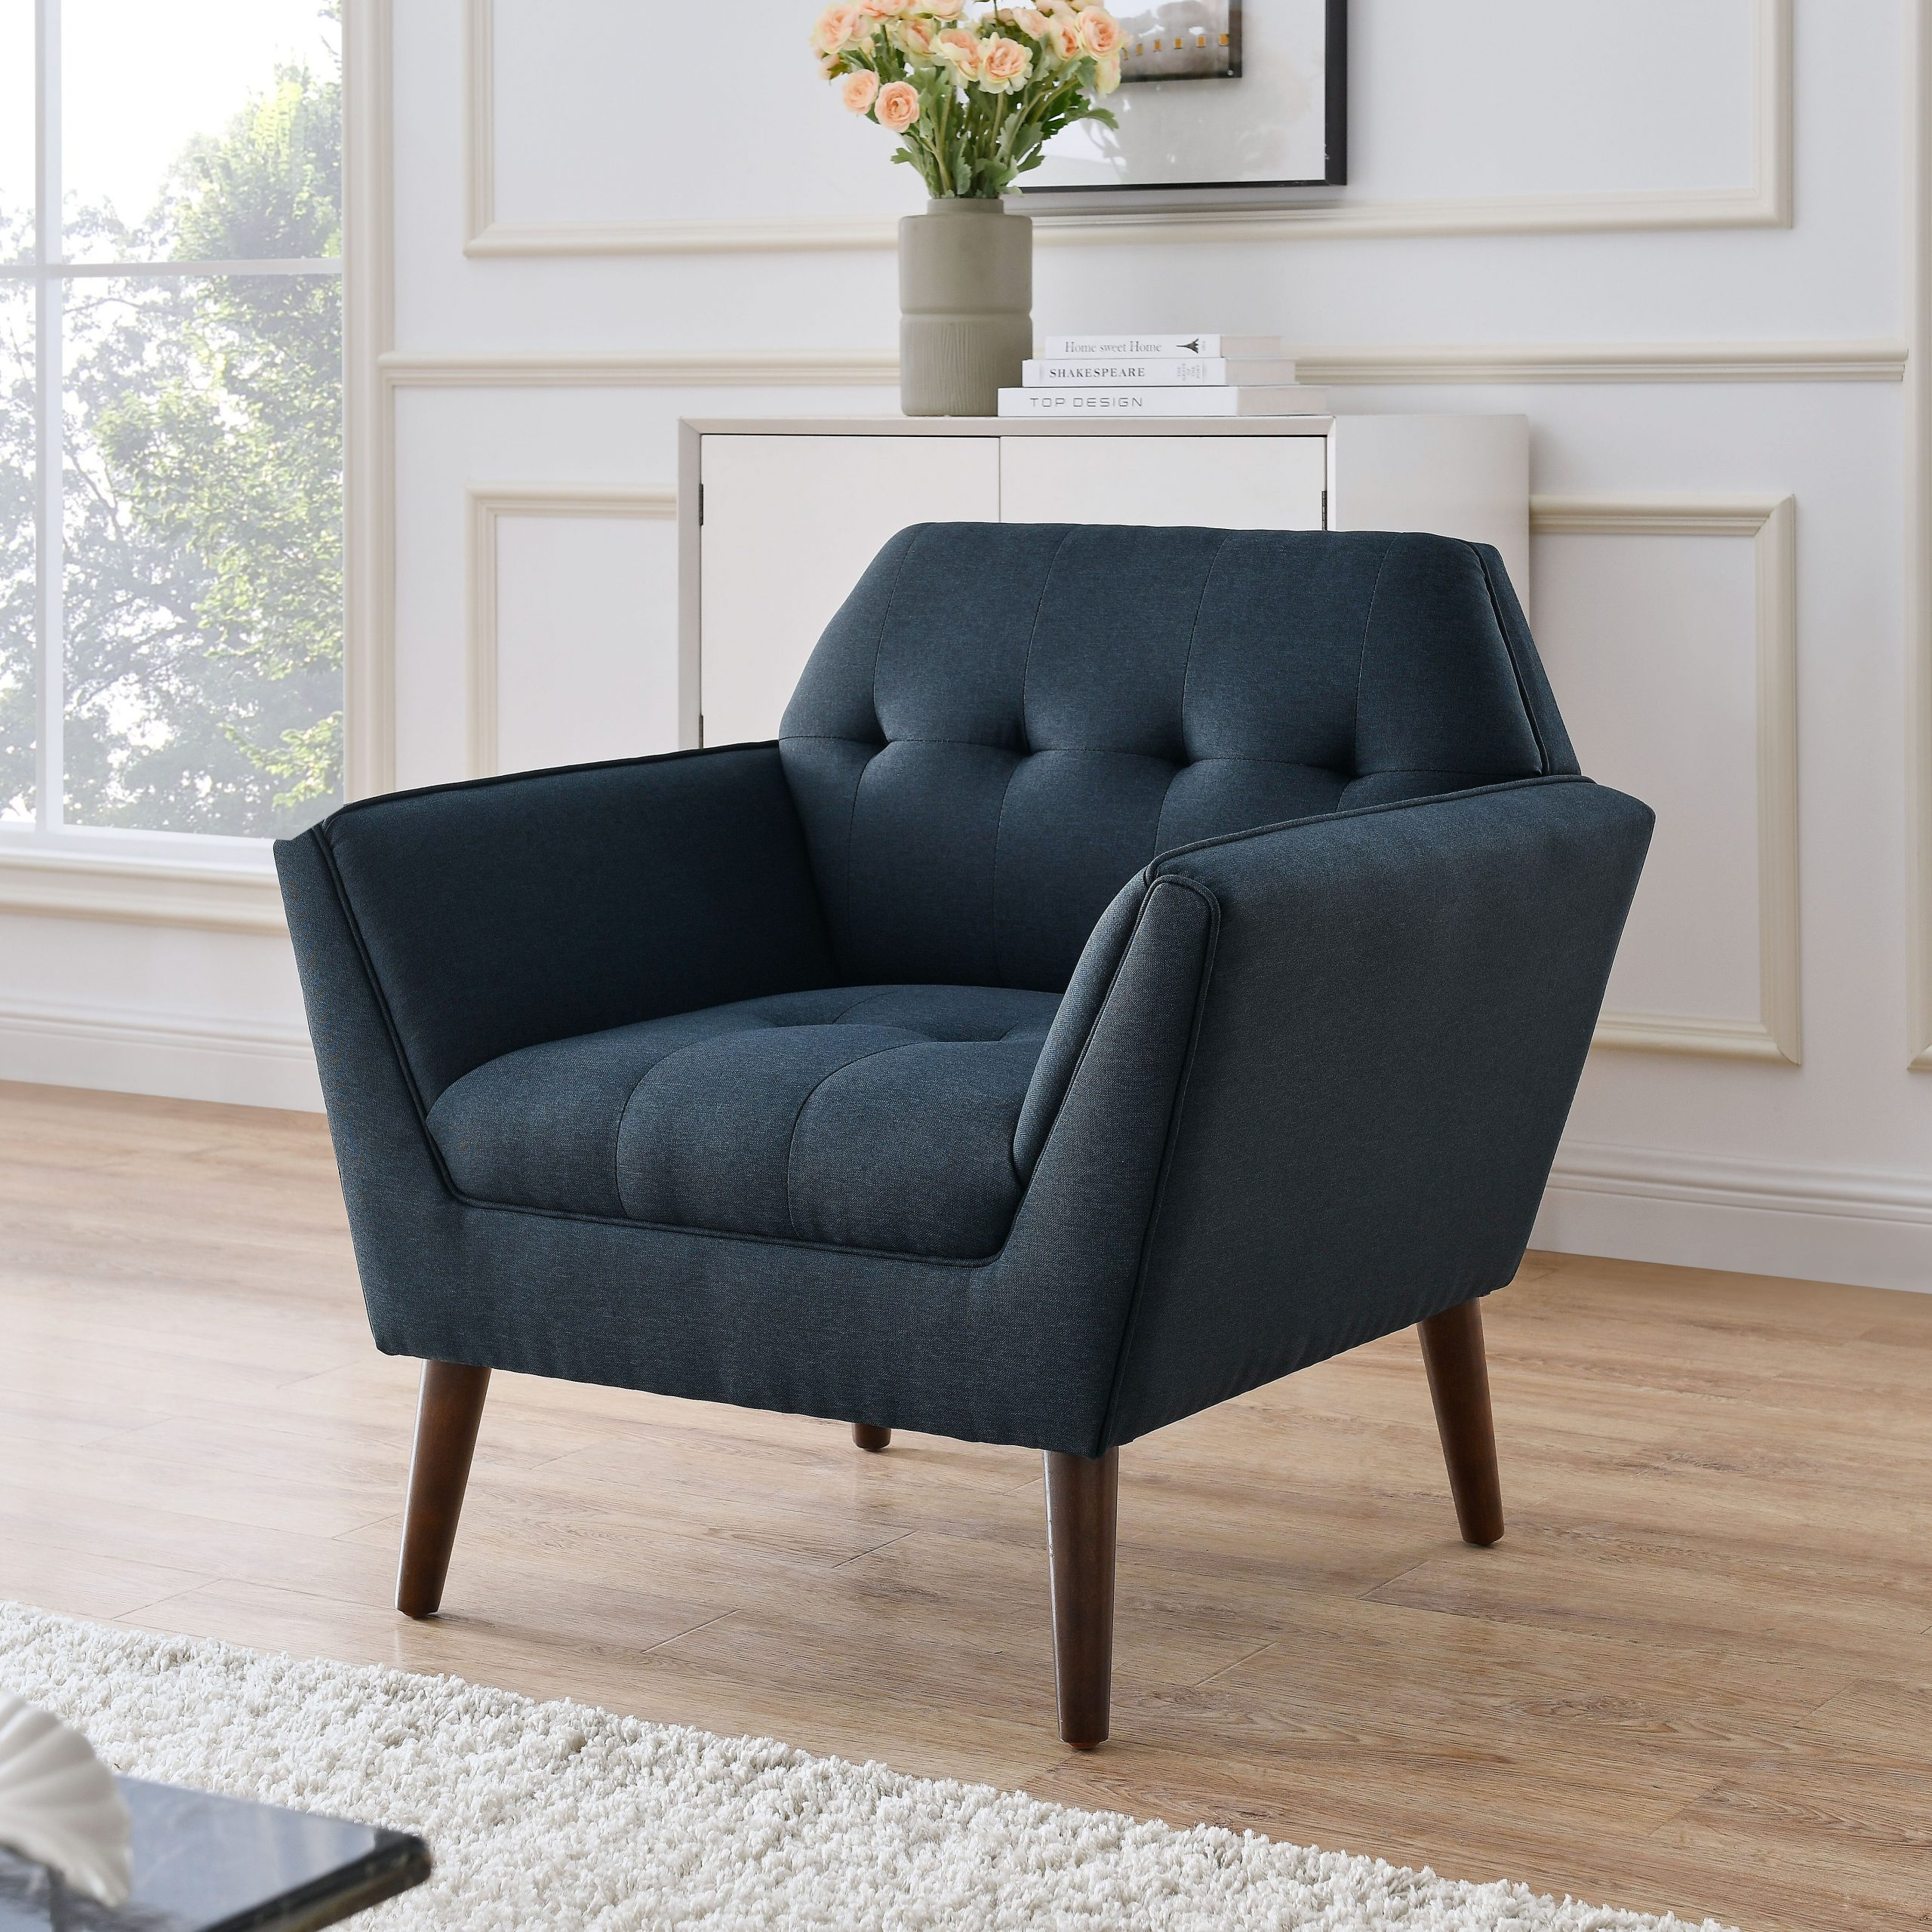 Glenna Estee Accent Armchair With Autenberg Armchairs (View 9 of 15)